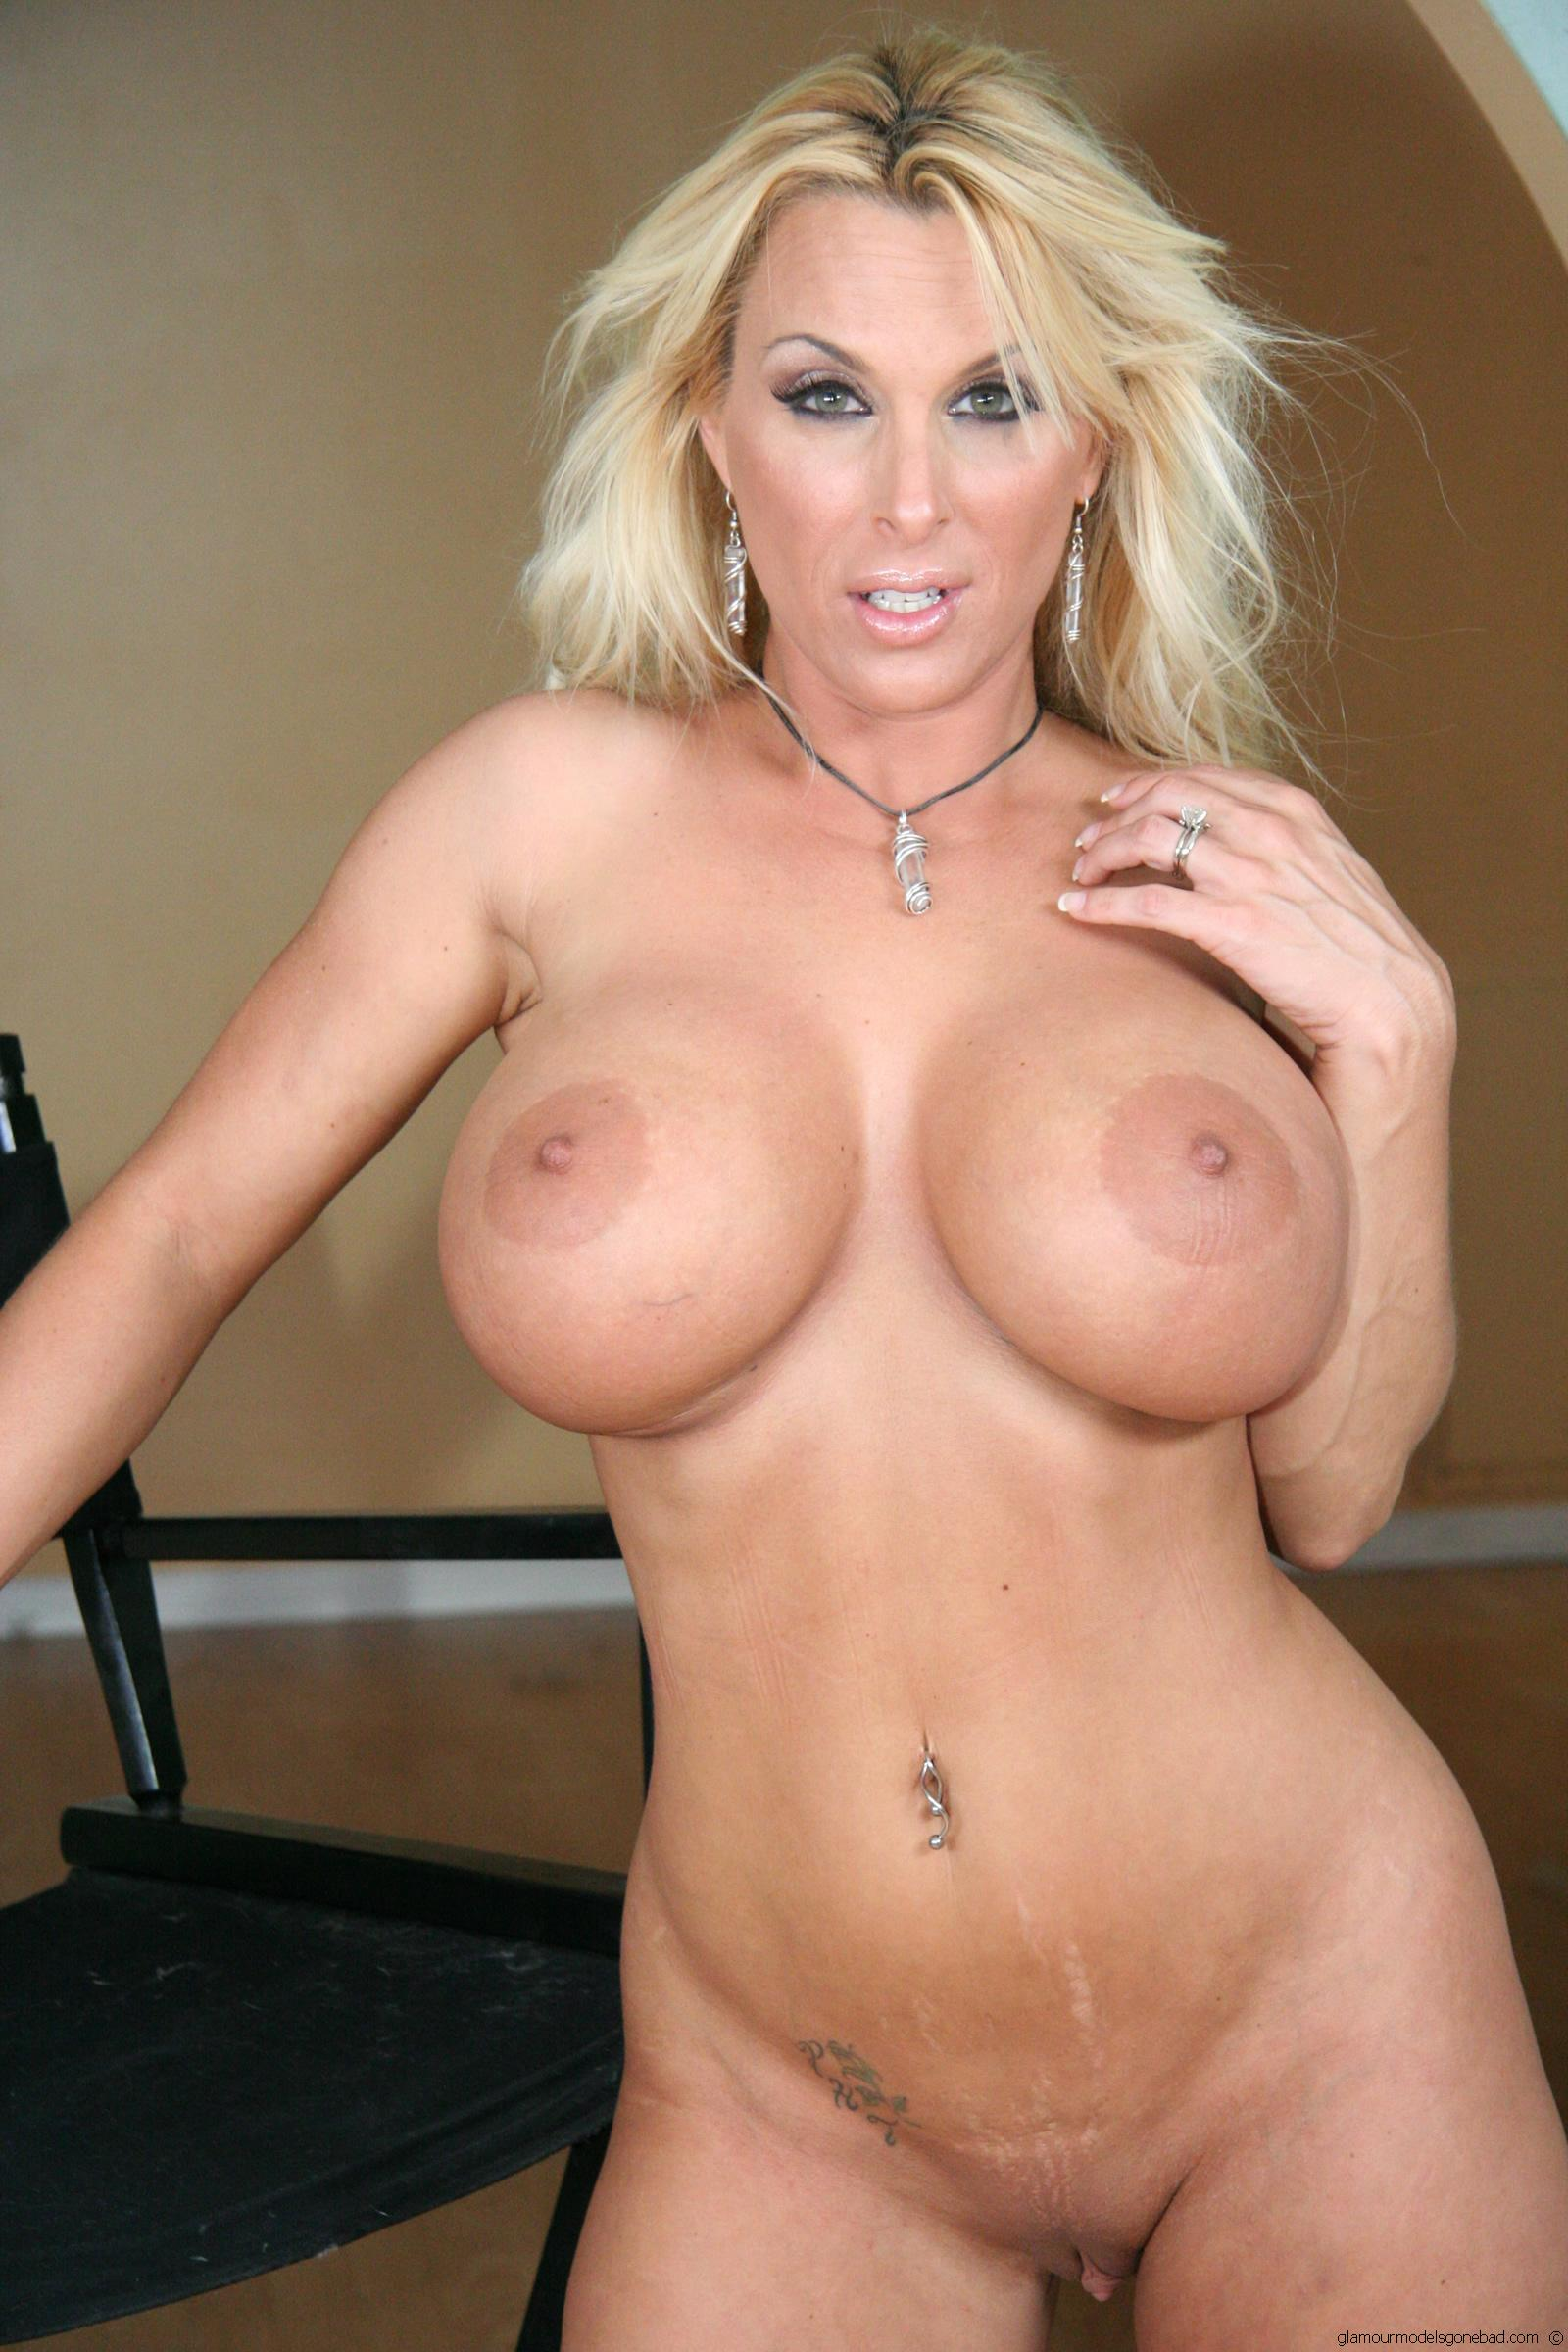 Holly halston free pics